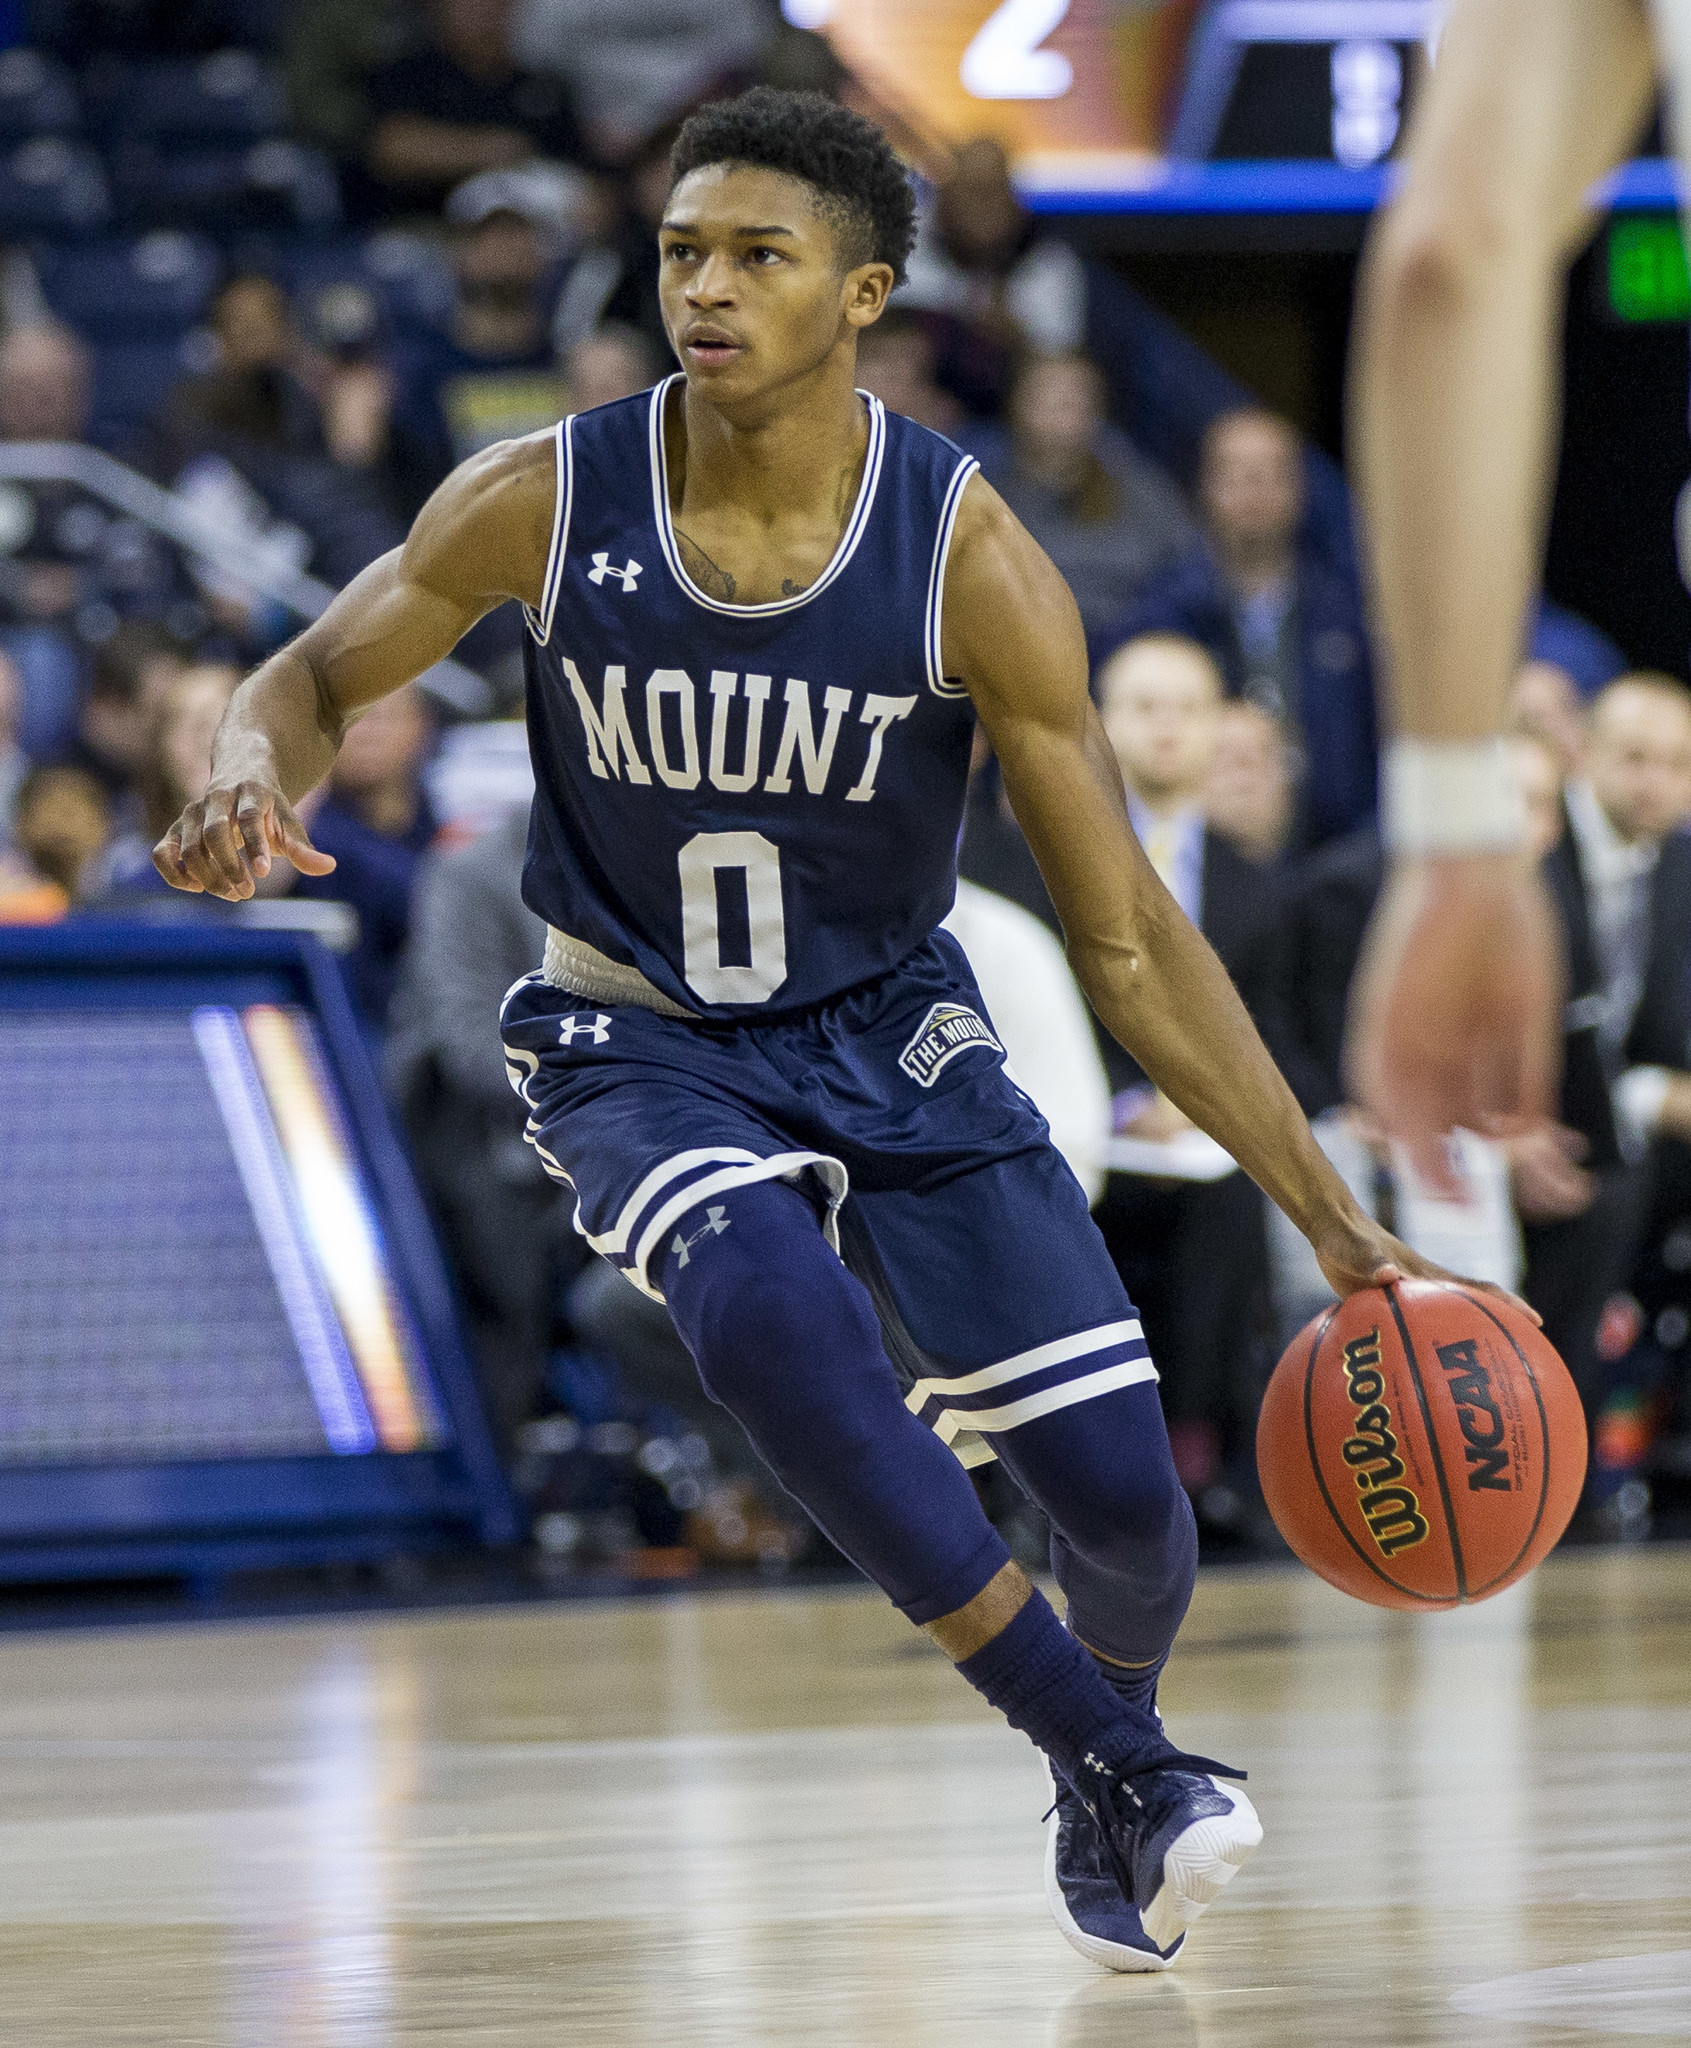 Bs-sp-state-college-hoops-roundup-1116-20171115